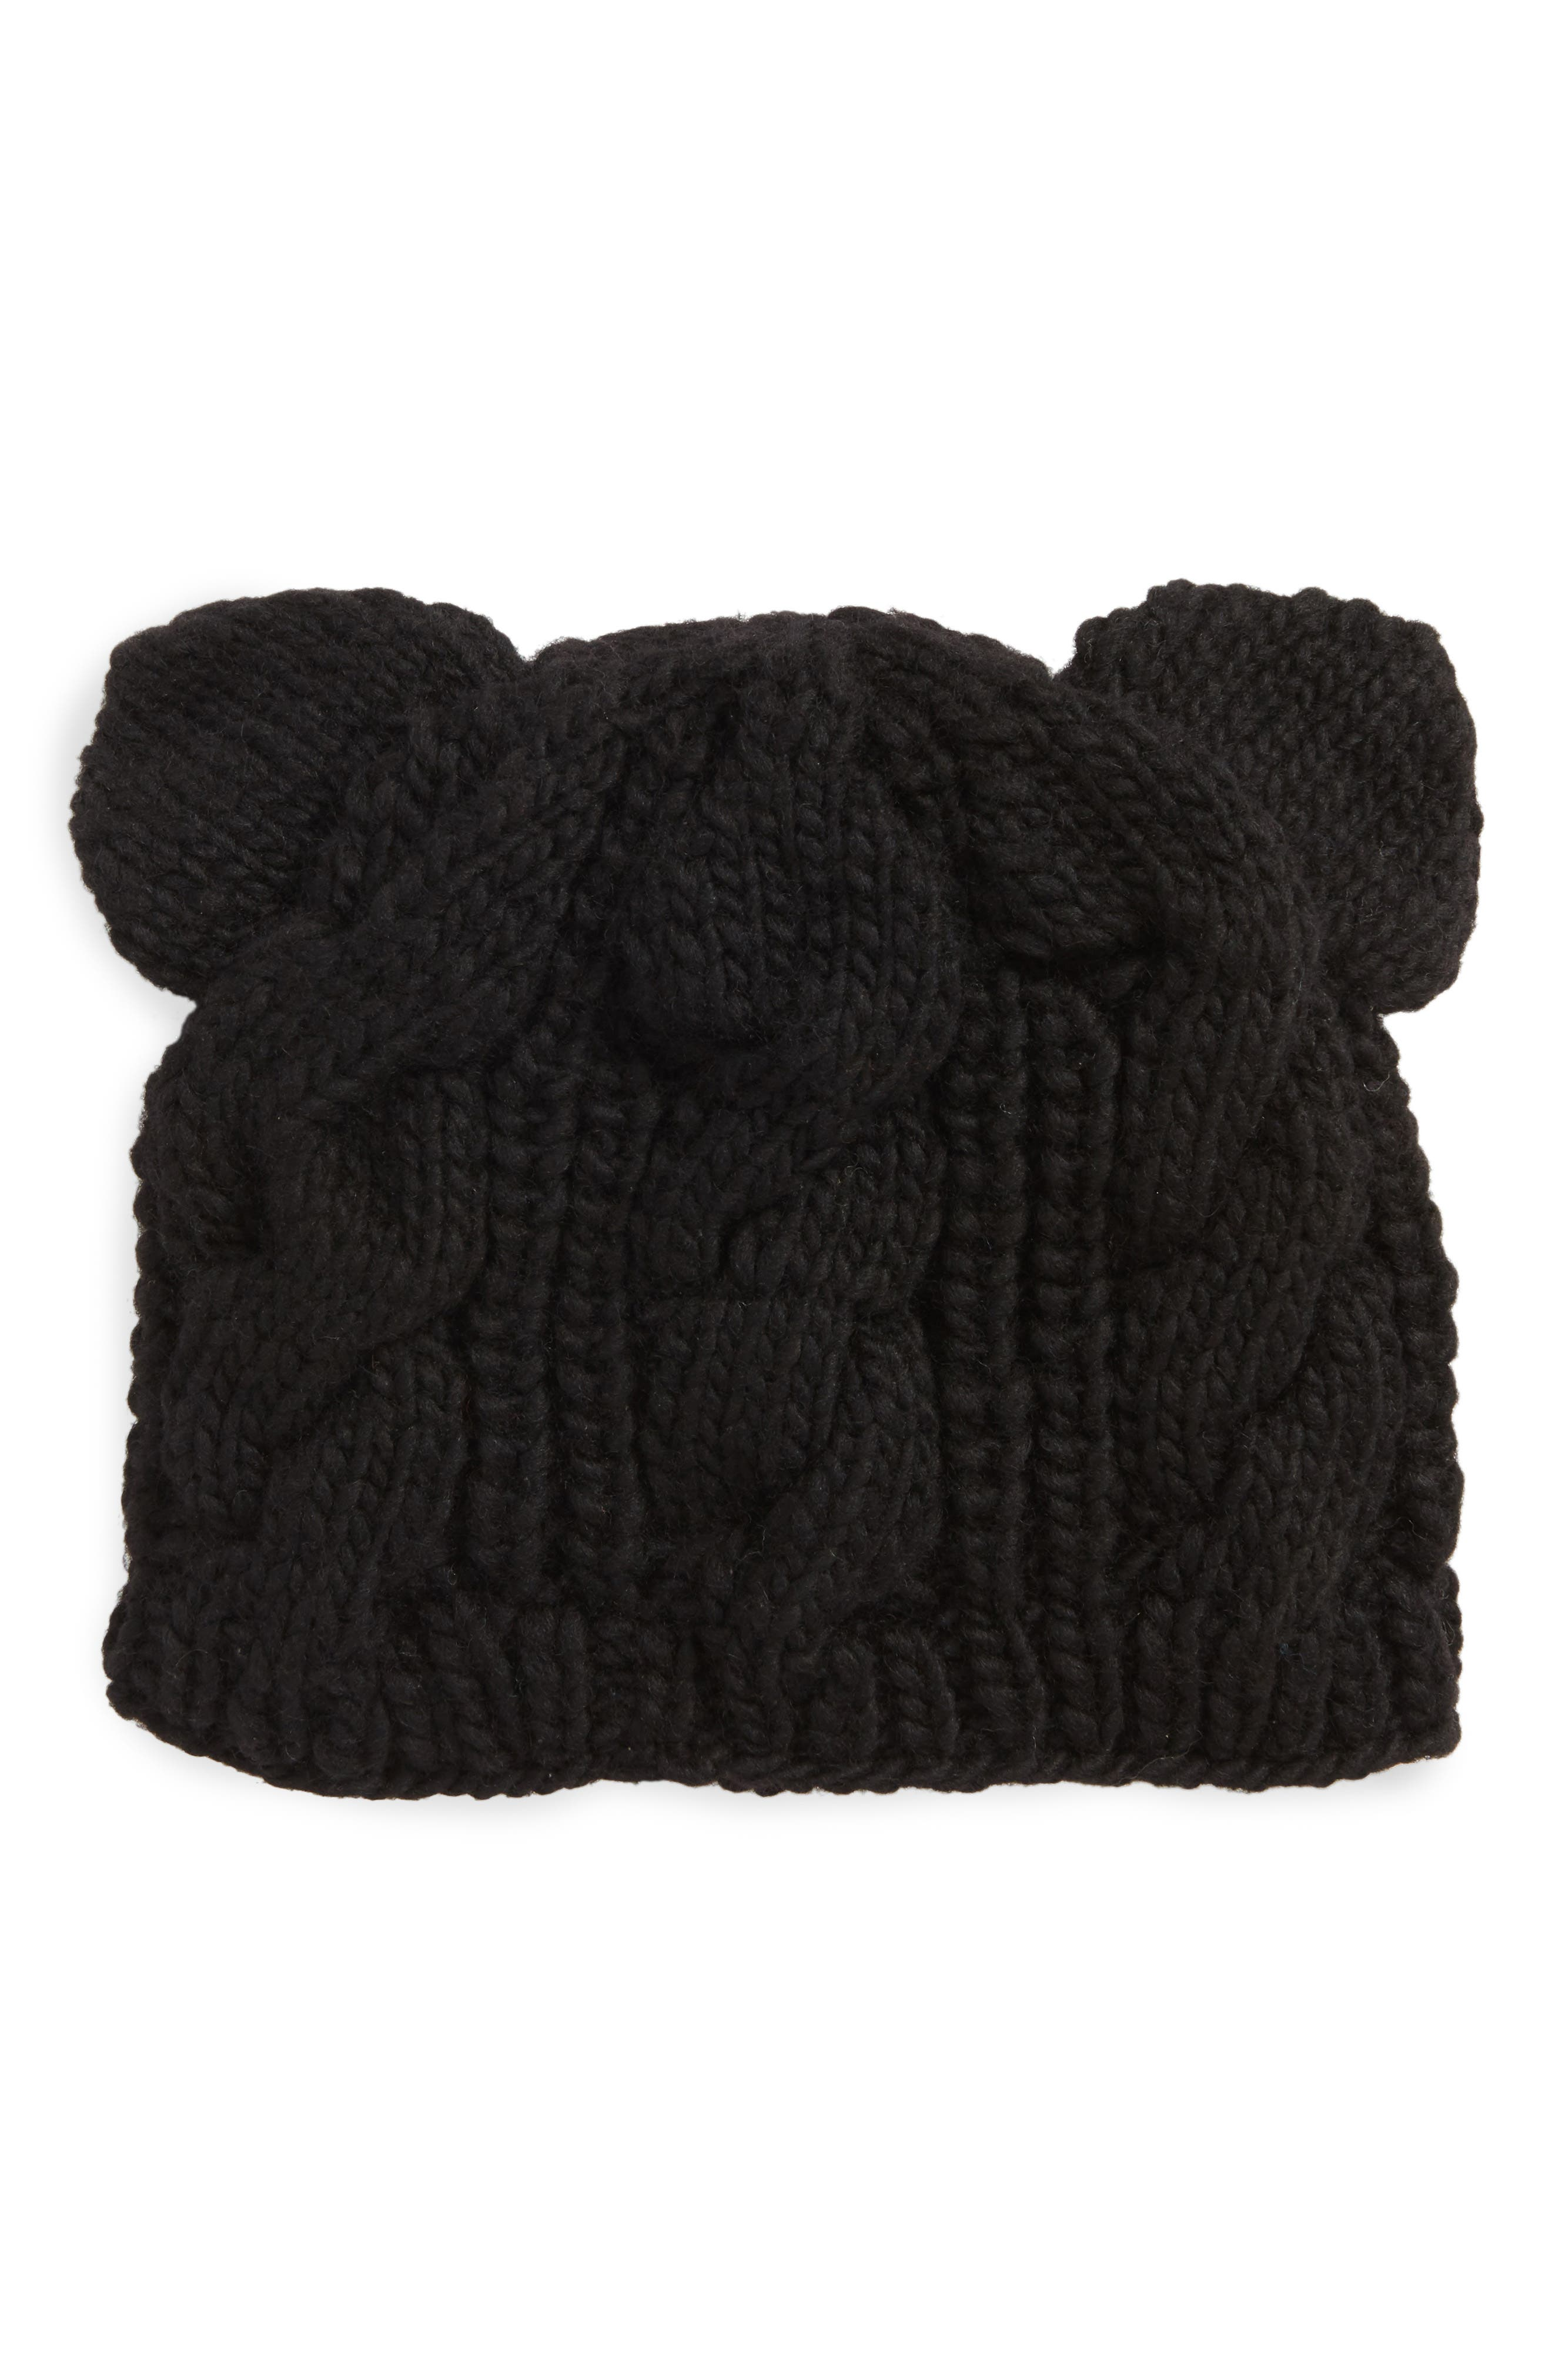 Cable Knit Kitty Beanie,                         Main,                         color, 001